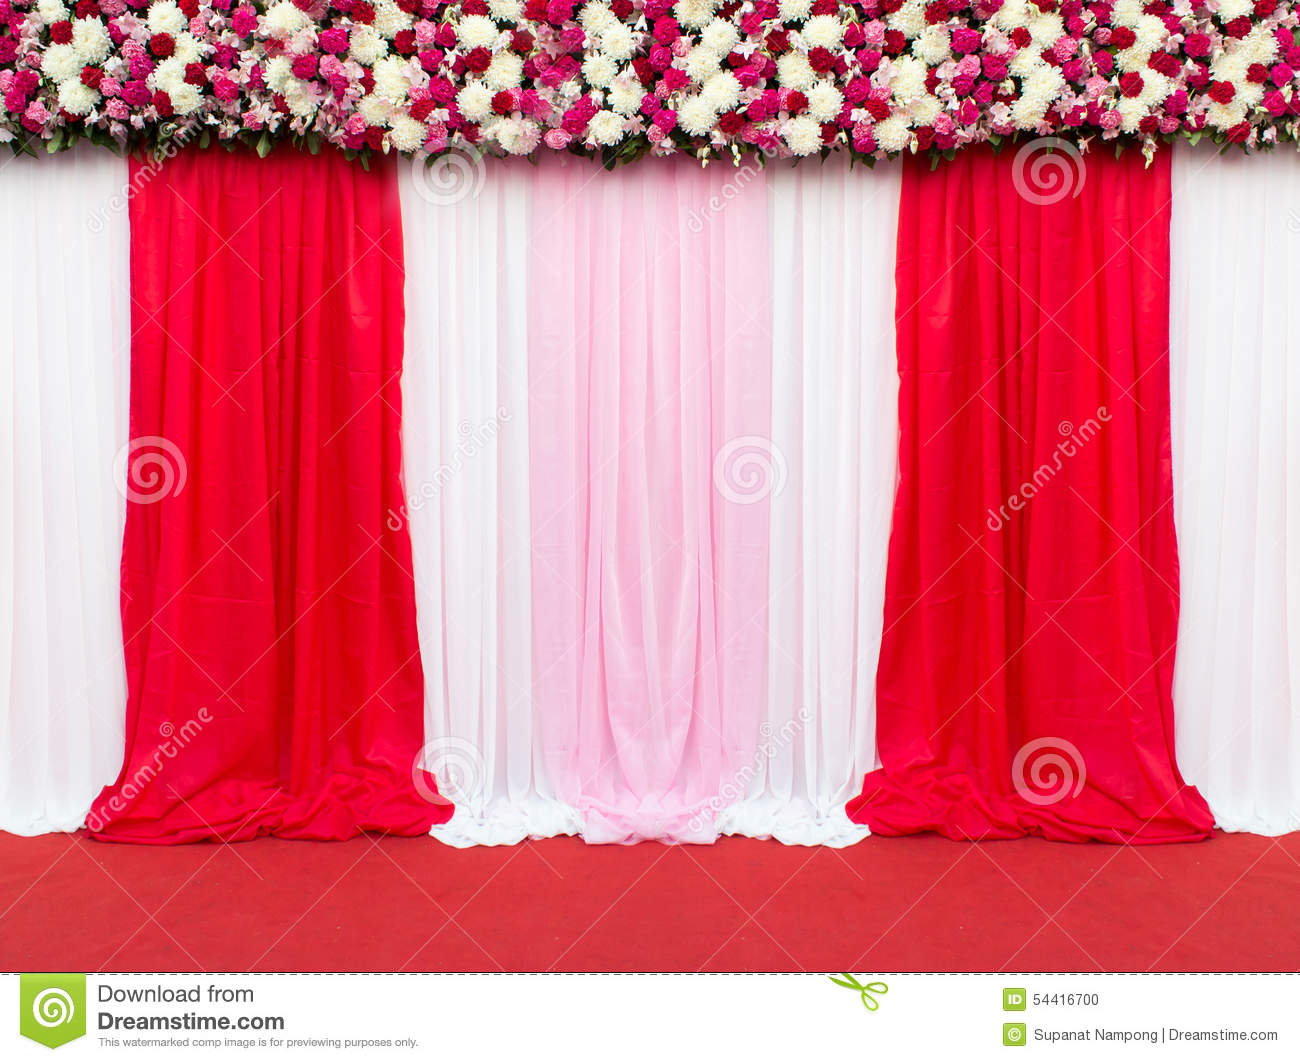 Wedding stage decoration stock images 976 photos for Backdrops for stage decoration